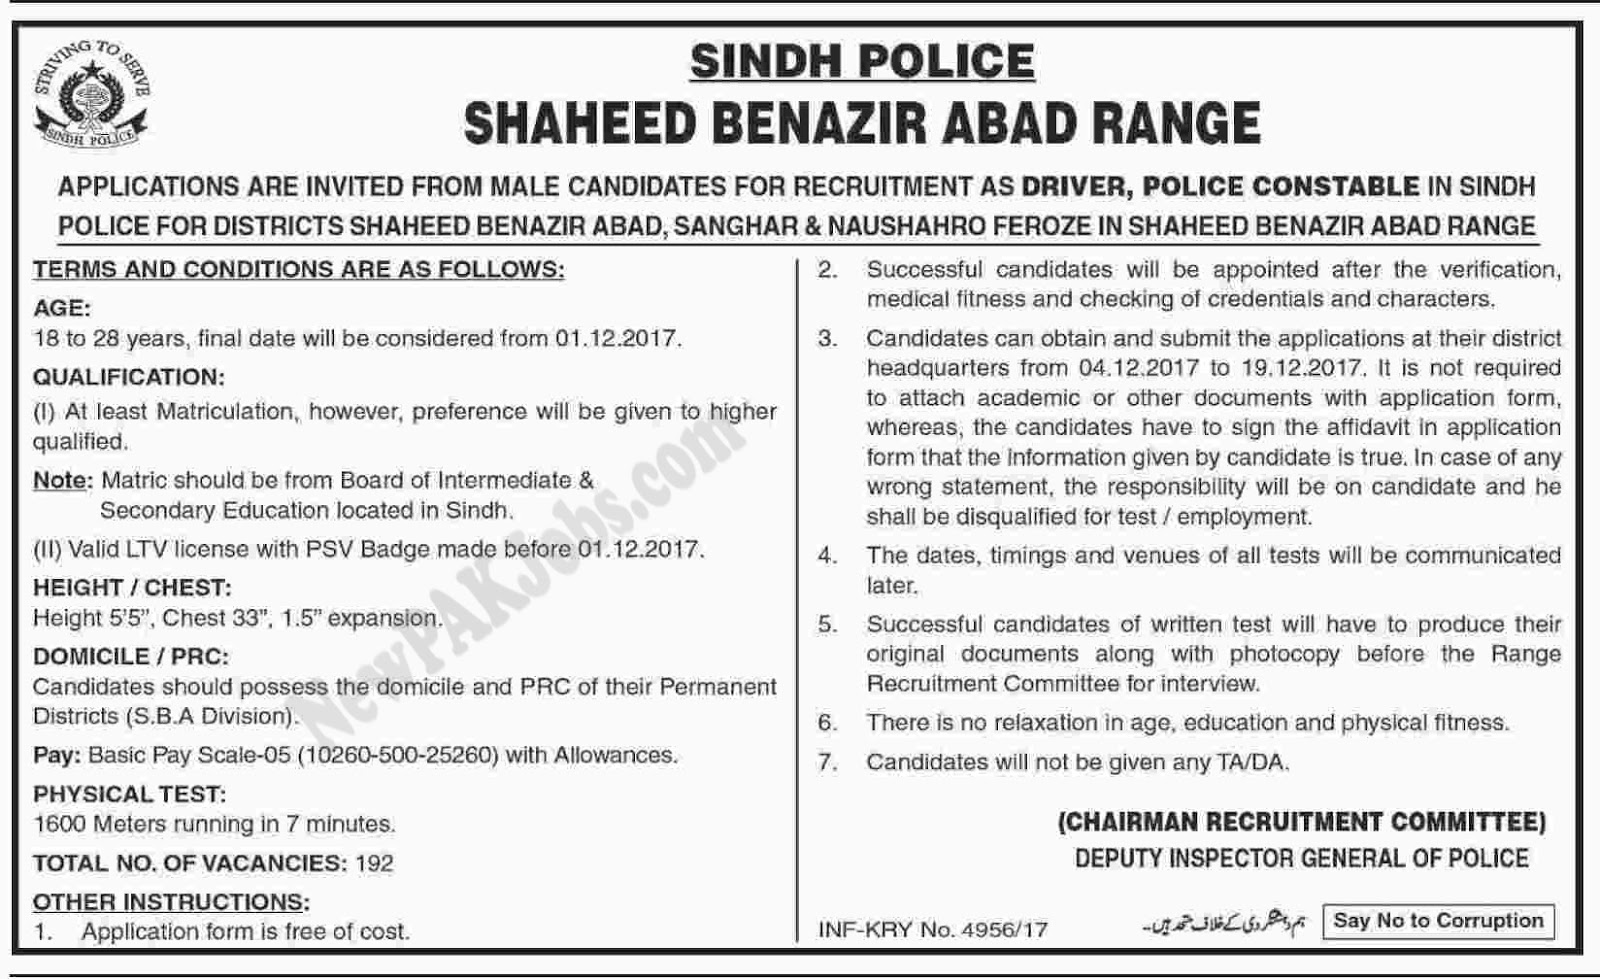 Recruitment Of Police Commandos Job In Sindh Police 2019 – Desenhos